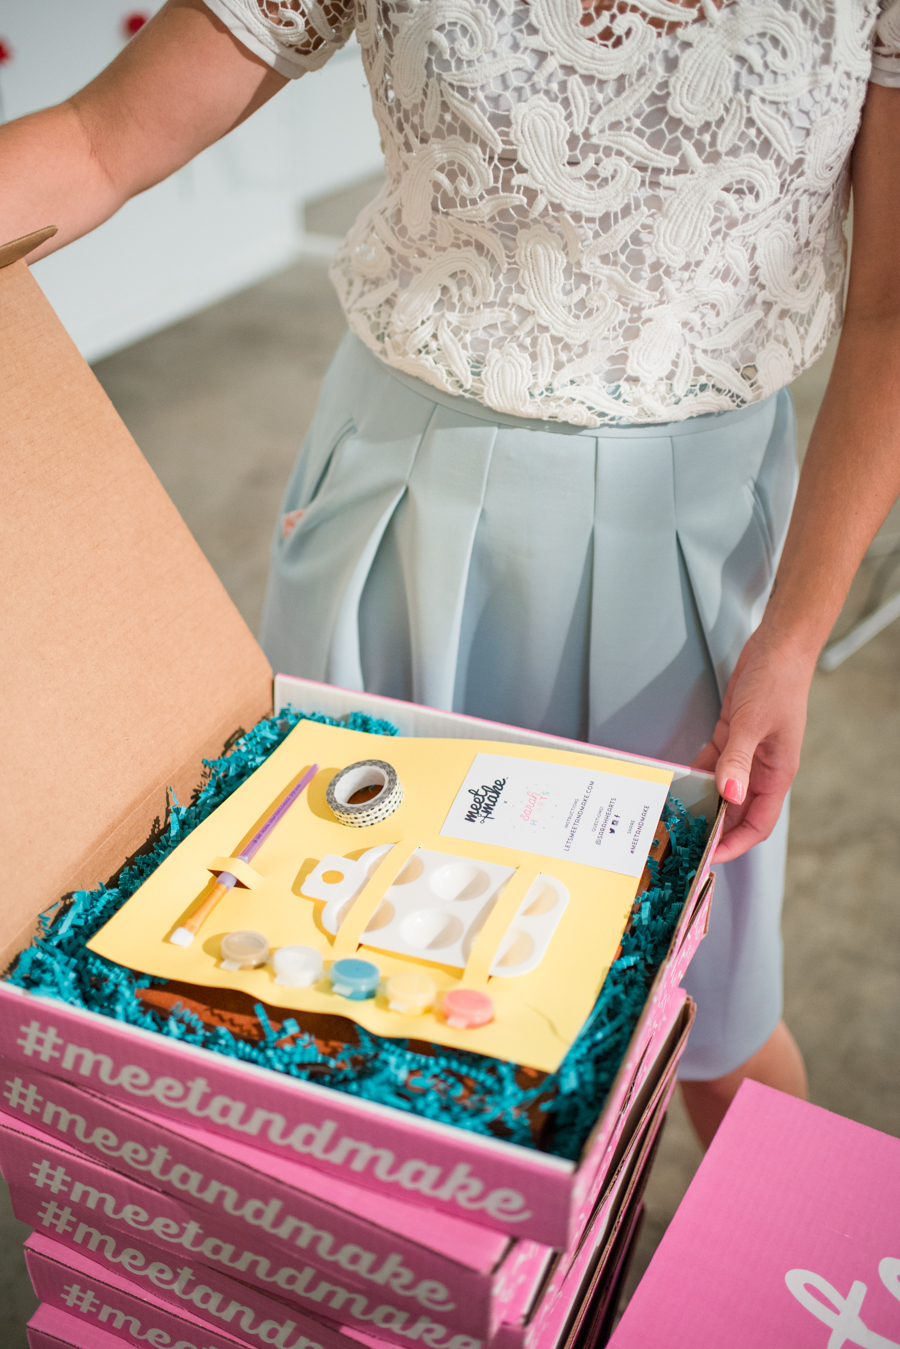 Look how cute the packaging is for these DIY project kits. #meetandmake